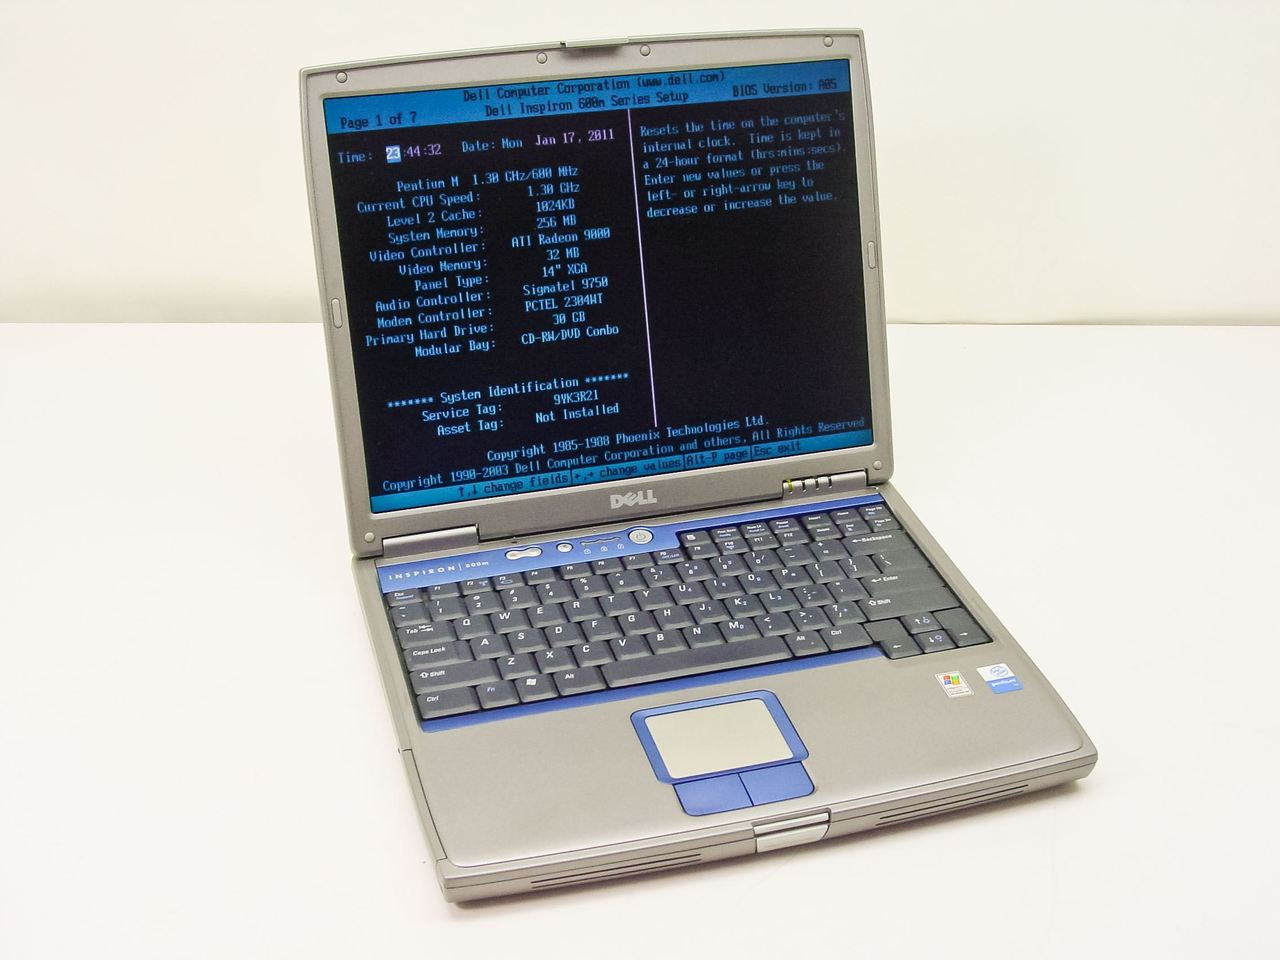 Dell Pentium M 1 30GHz, Laptop - AS IS Inspiron 600m